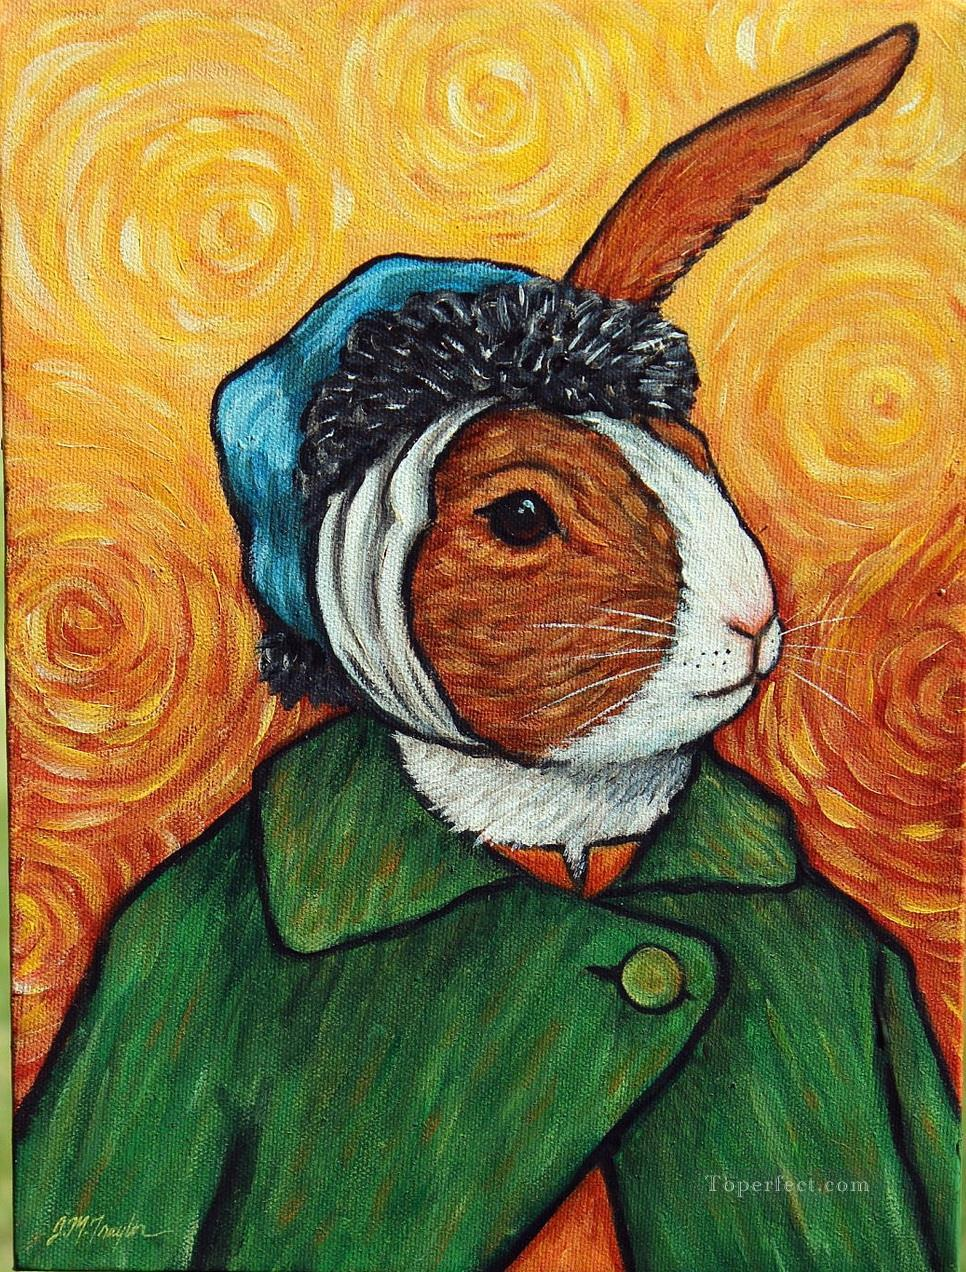 rabbit of van gogh selfportrait Oil Paintings